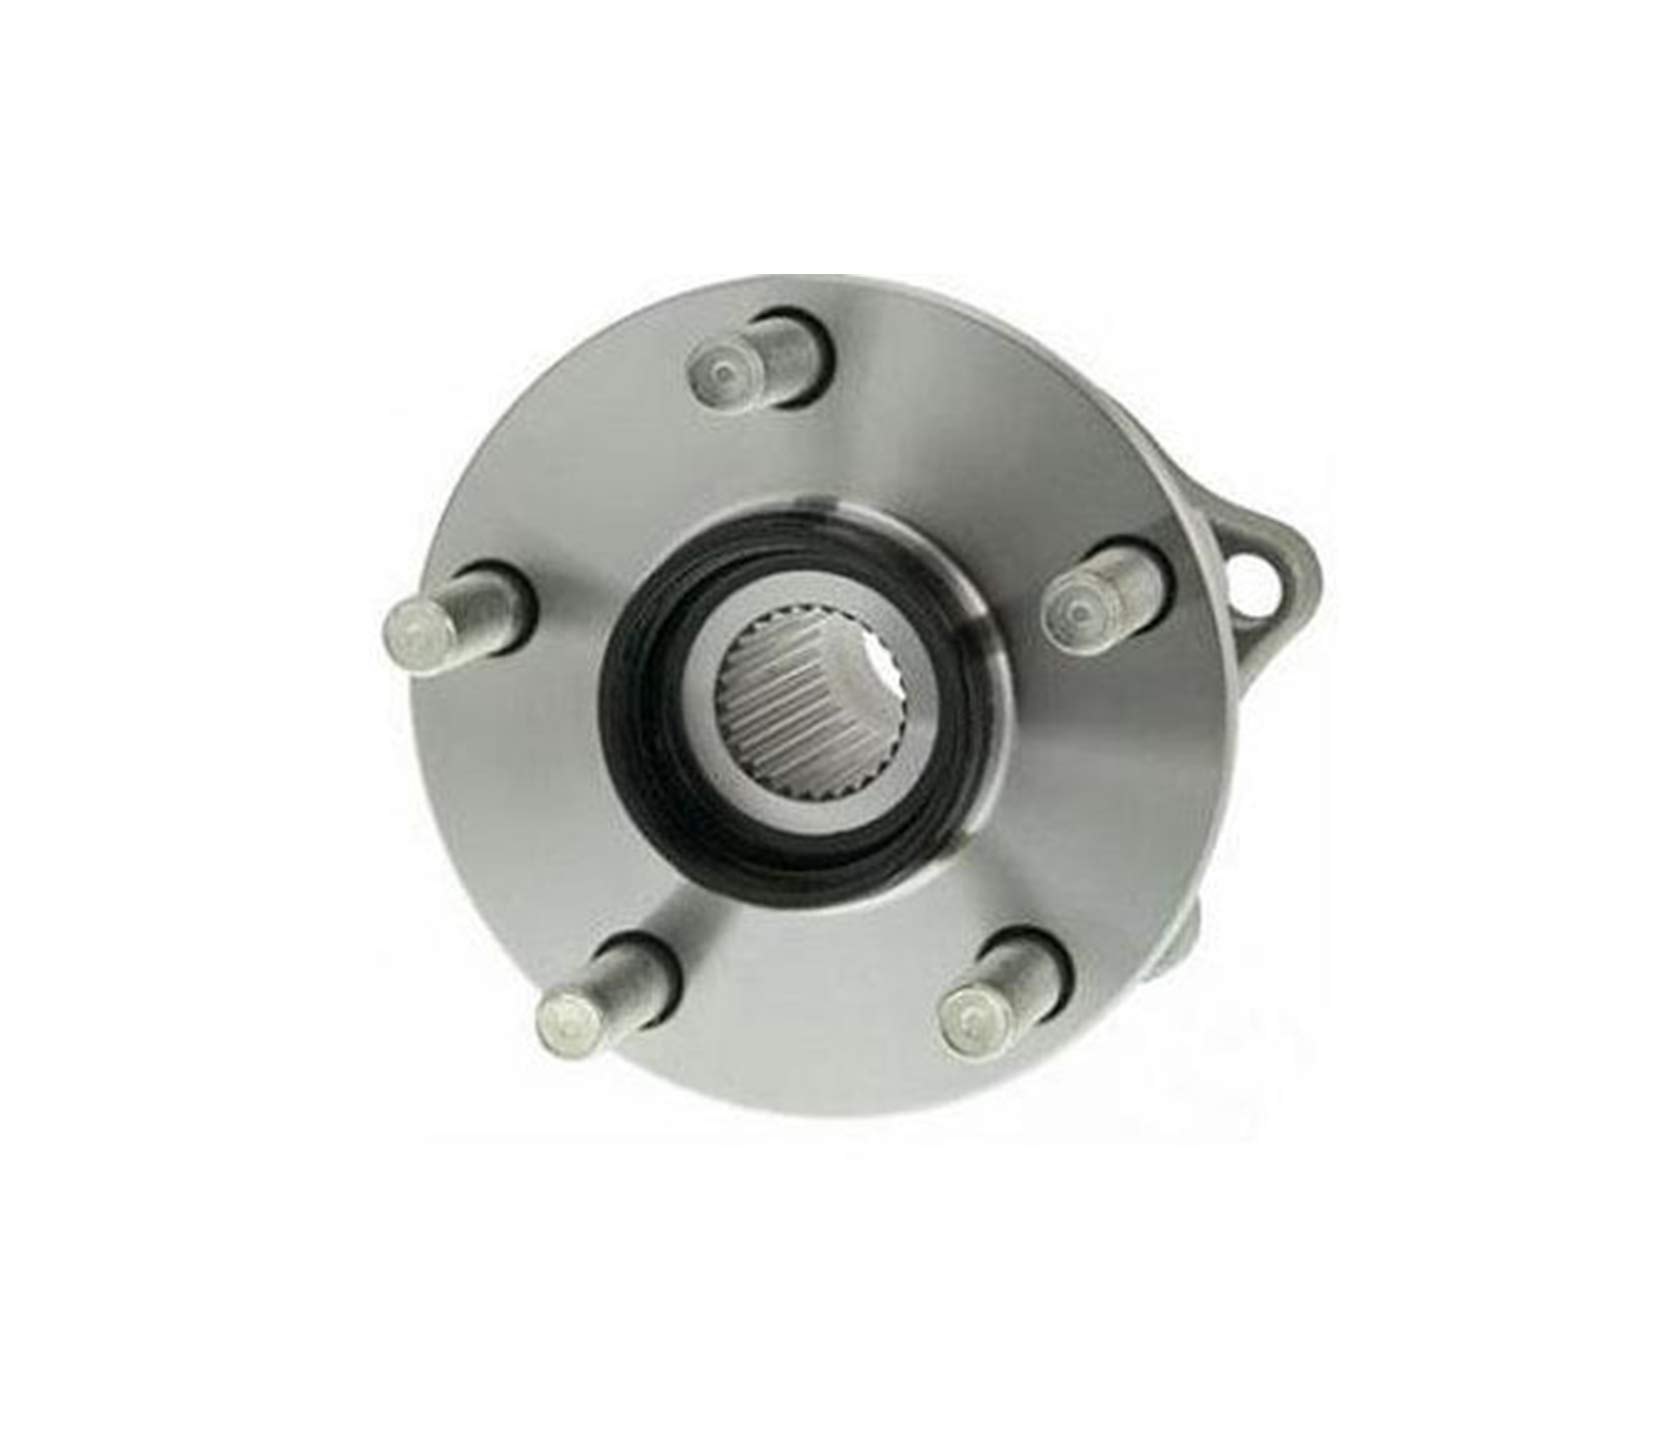 New ONE Rear Wheel Hub Bearing Assembly fits for Subaru Forester 09-13 by Mac Auto Parts